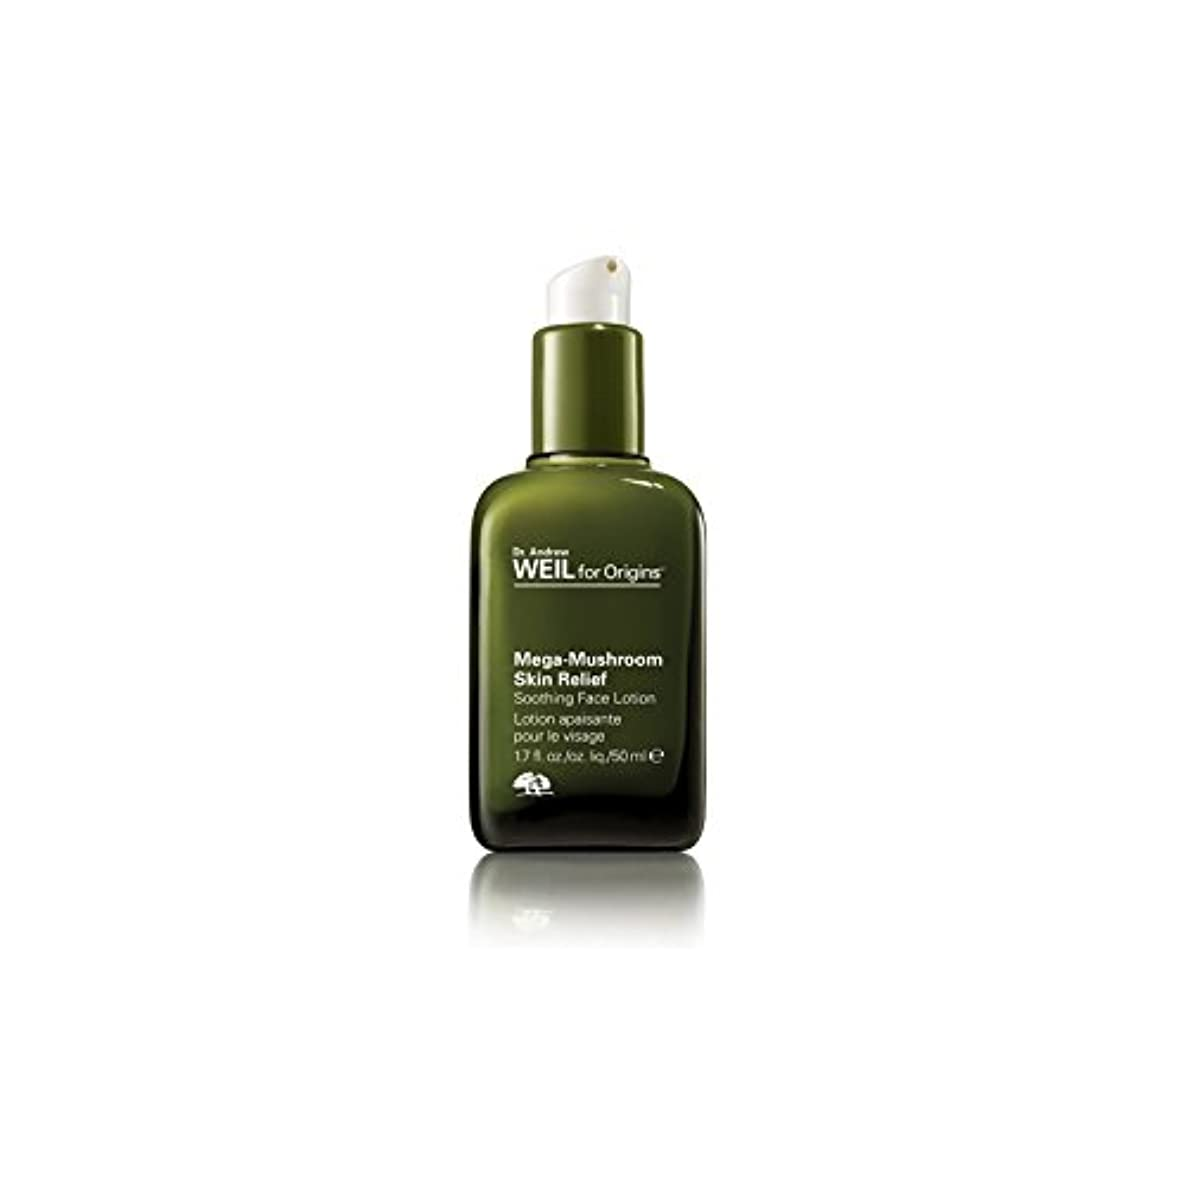 聖職者ダイヤモンド発表Origins Dr. Andrew Weil For Origins Mega-Mushroom Skin Relief Soothing Face Lotion 50ml (Pack of 6) - 起源アンドルー?ワイル...